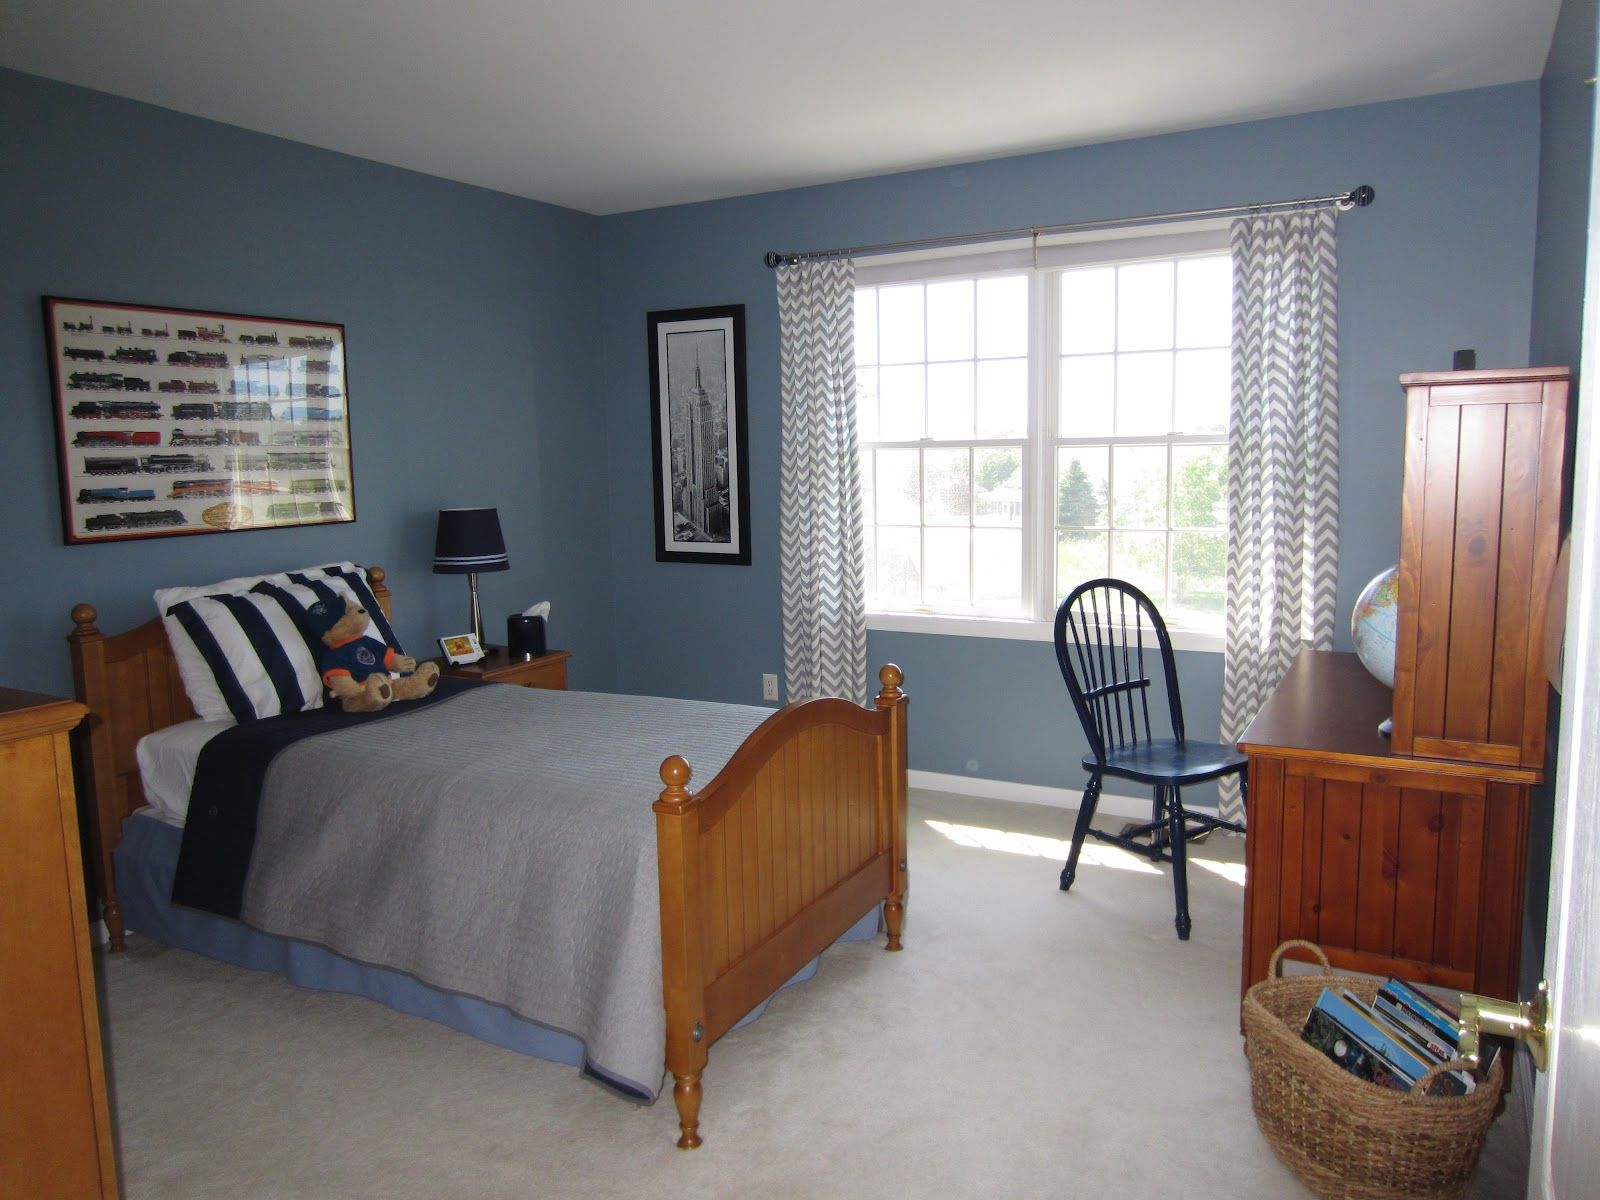 Boys Room Paint Ideas With Simple Design Schlafzimmer Design